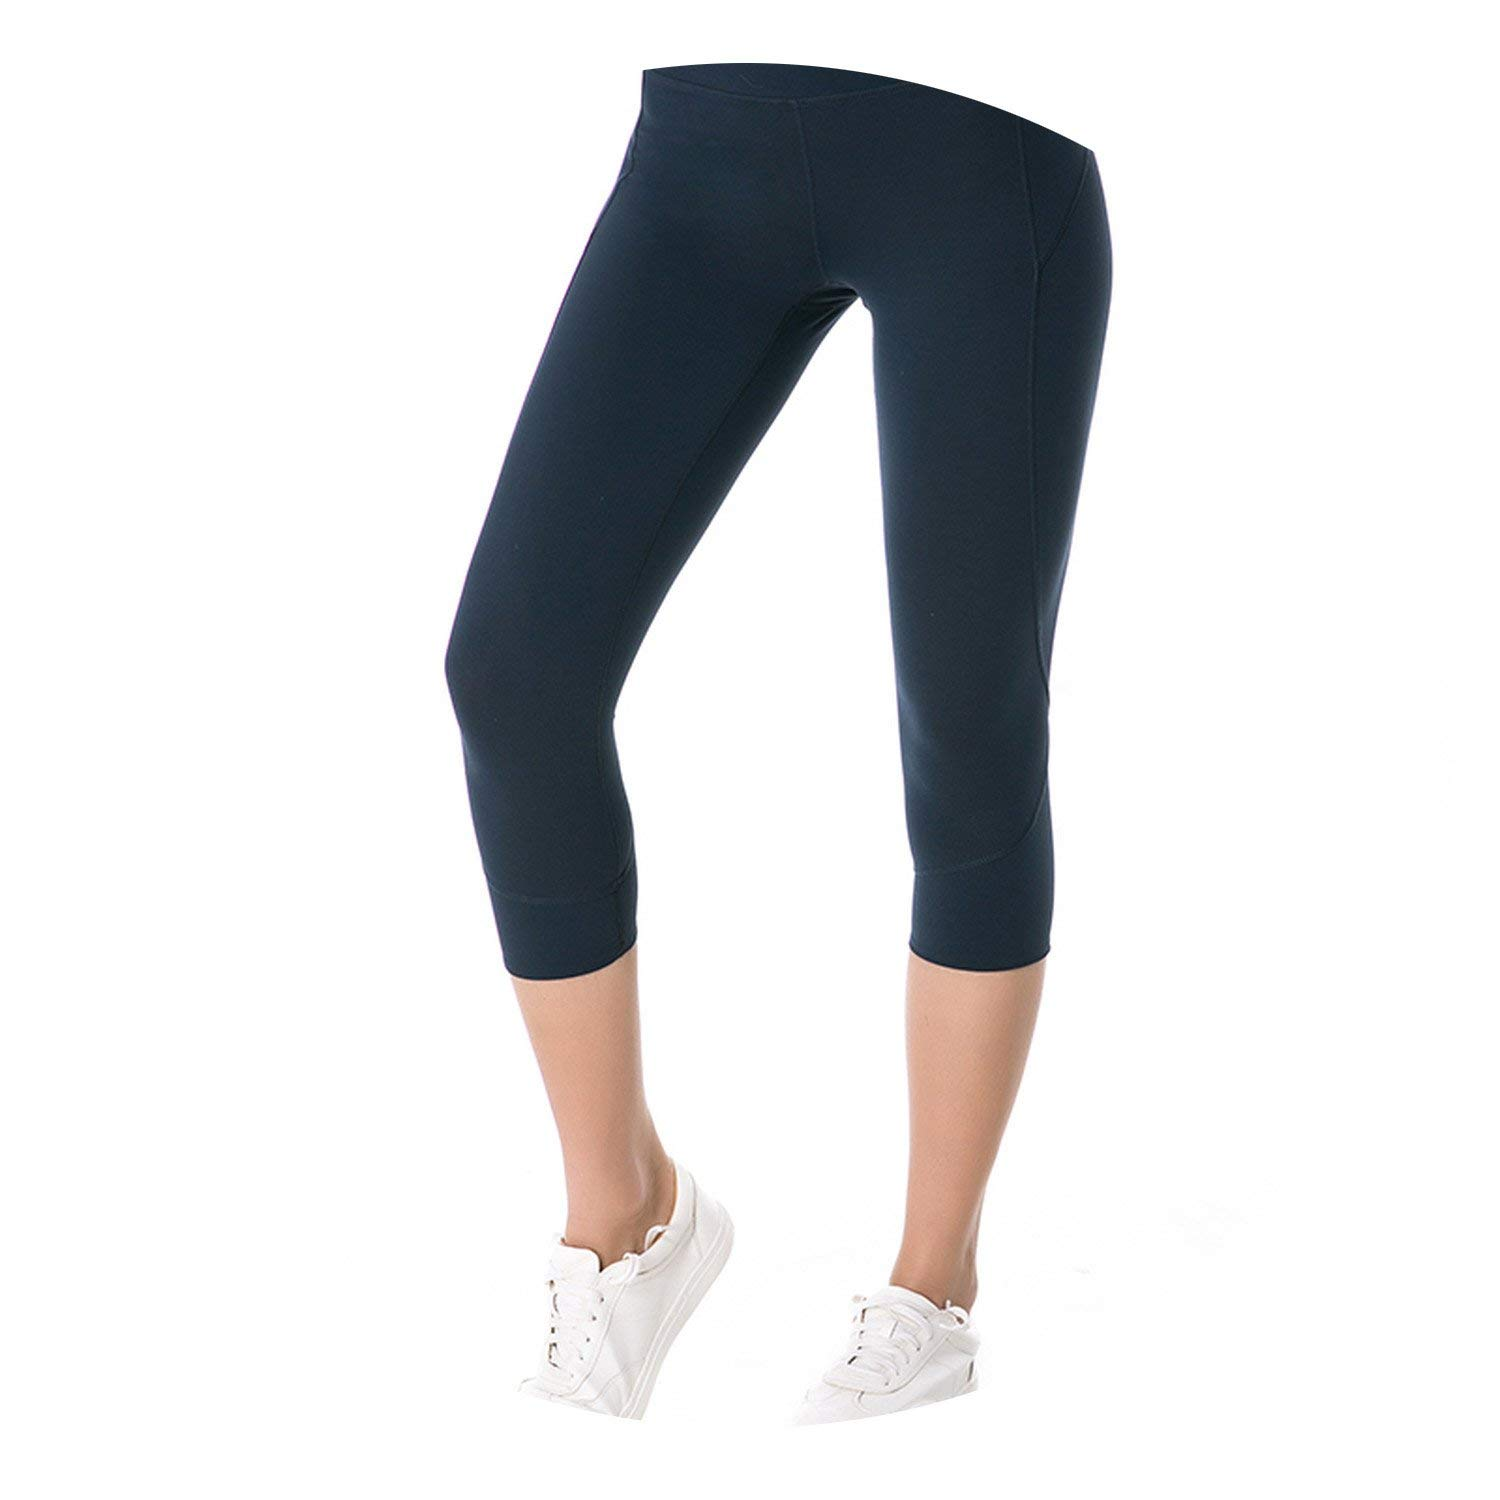 Pru blueee Medium Women Squat Proof Yoga Pants Crop Yoga Leggings Sports Capri Tights Fitness Cropped Pant